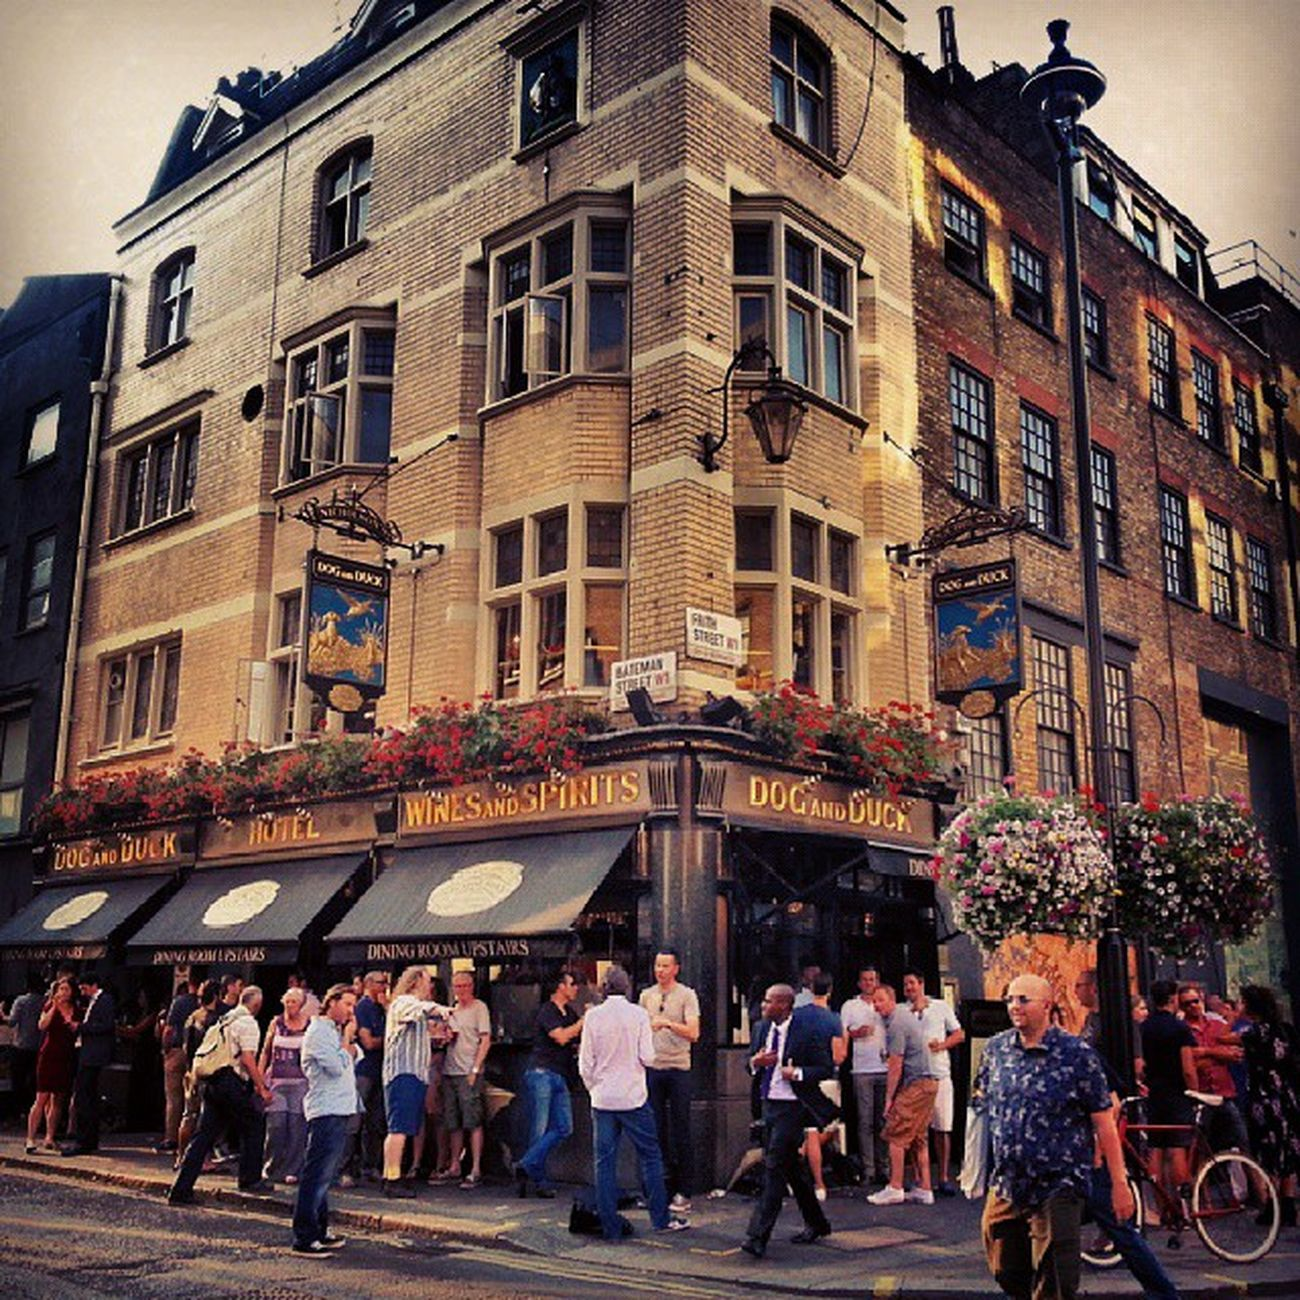 London Soho England Duckanddog cafe bar pub igers igersworldwide ig_bestever best_shots_ever ig_turkey turkinstagram ig_mood igbox instacool instagood insta_pick squaregram vscocam vscoism vsco instamood